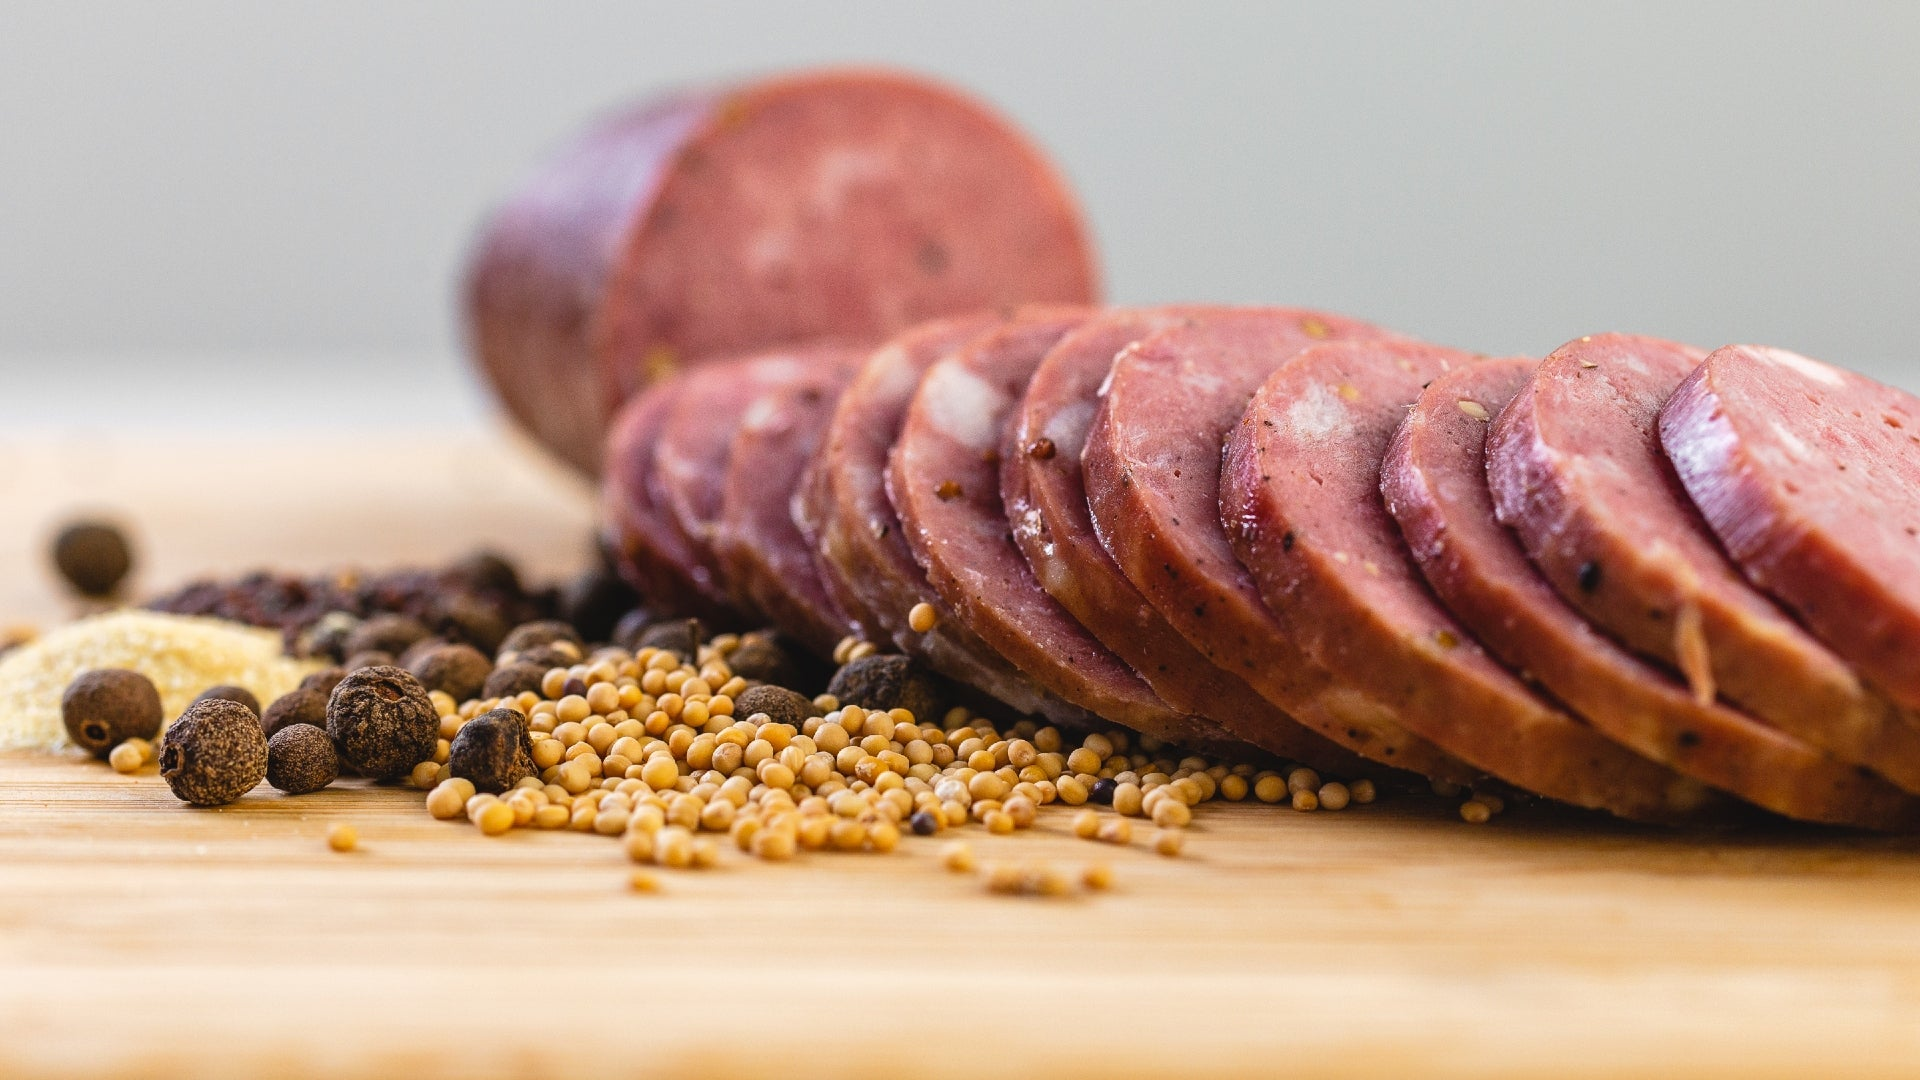 A close up of smoke summer sausage slices on a cutting board next to herbs and spices and with a whole chub of summer sausage in the background.